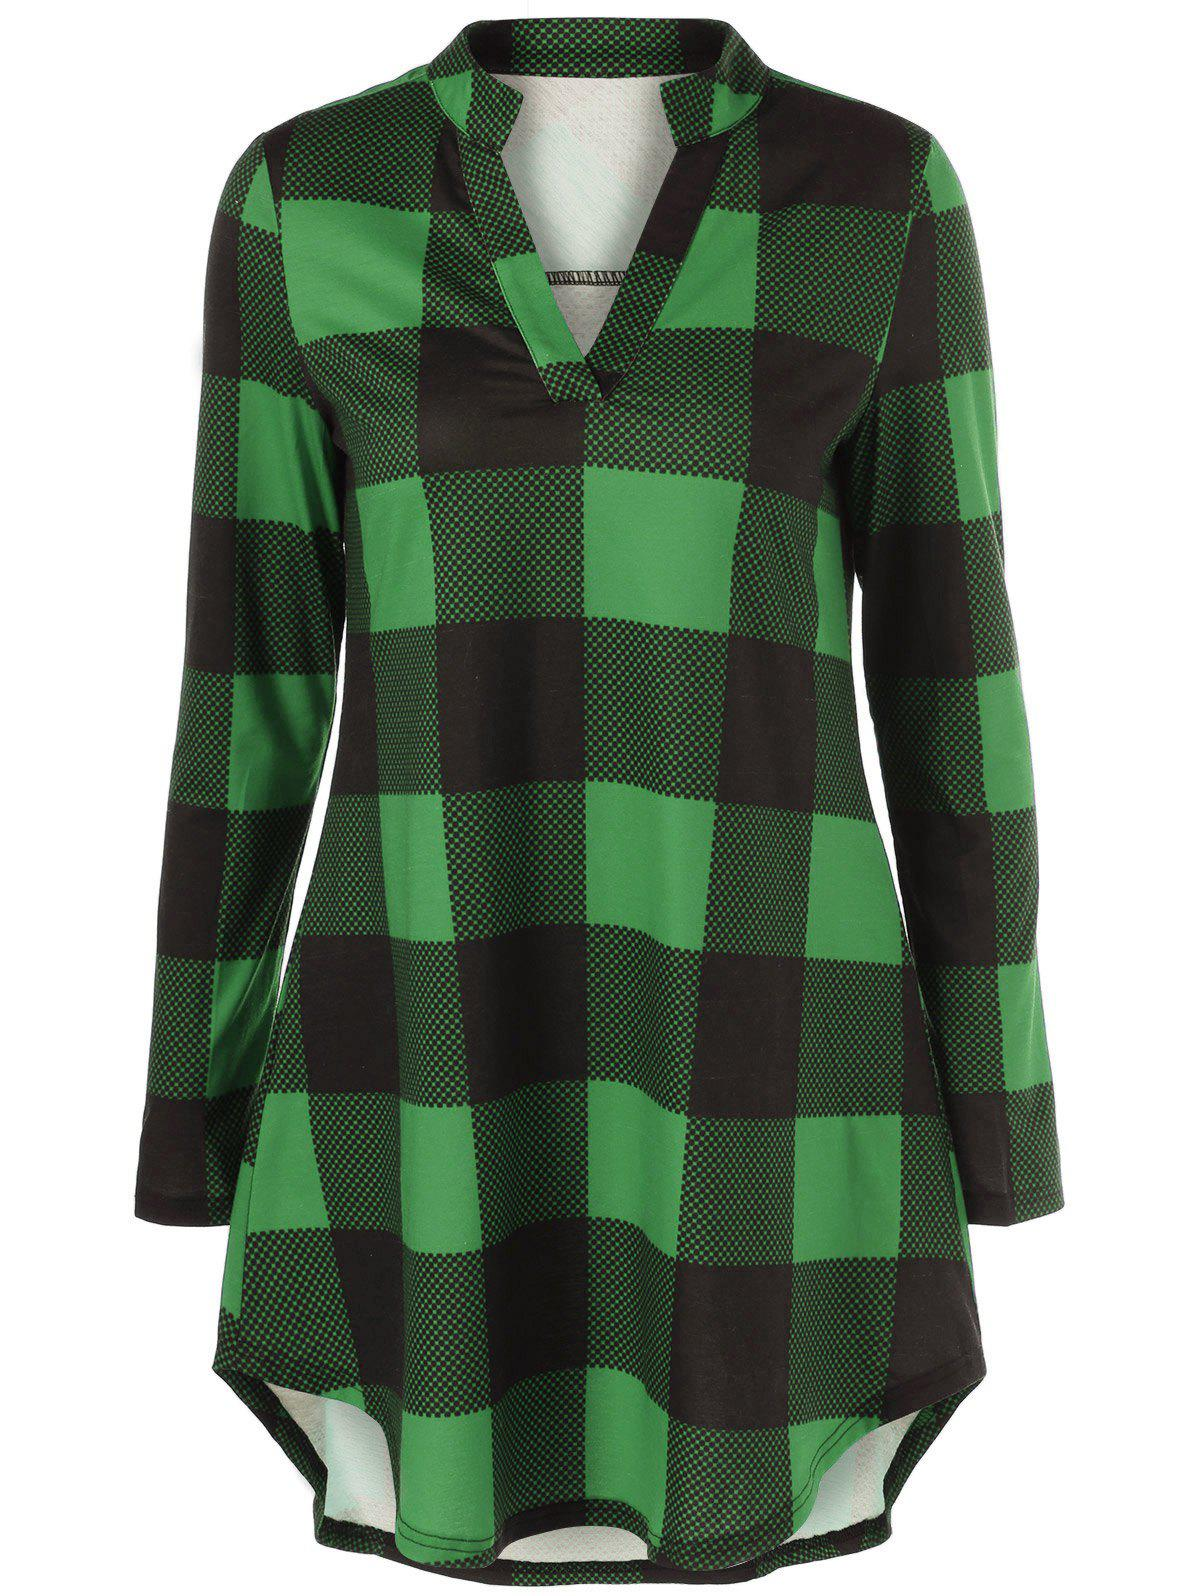 Split Neck Long Plaid Boyfriend T-ShirtWOMEN<br><br>Size: L; Color: GREEN; Material: Polyester,Spandex; Sleeve Length: Full; Collar: V-Neck; Style: Casual; Pattern Type: Plaid; Season: Fall,Spring; Weight: 0.2780kg; Package Contents: 1 x T-Shirt;